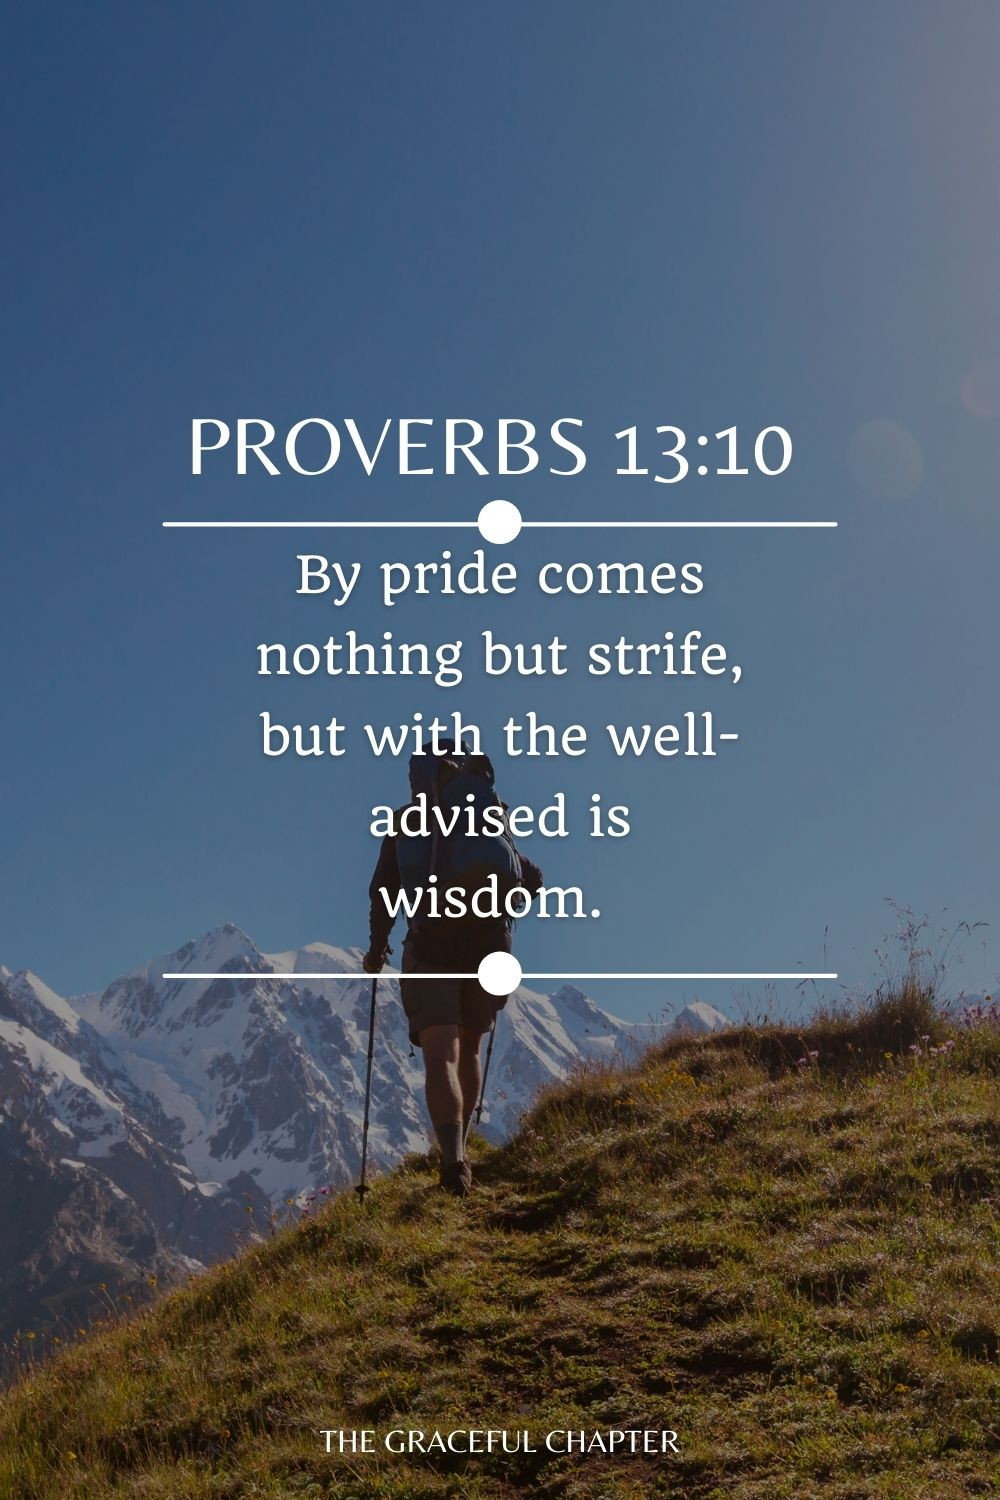 By pride comes nothing but strife, But with the well-advised is wisdom. Proverbs 13:10